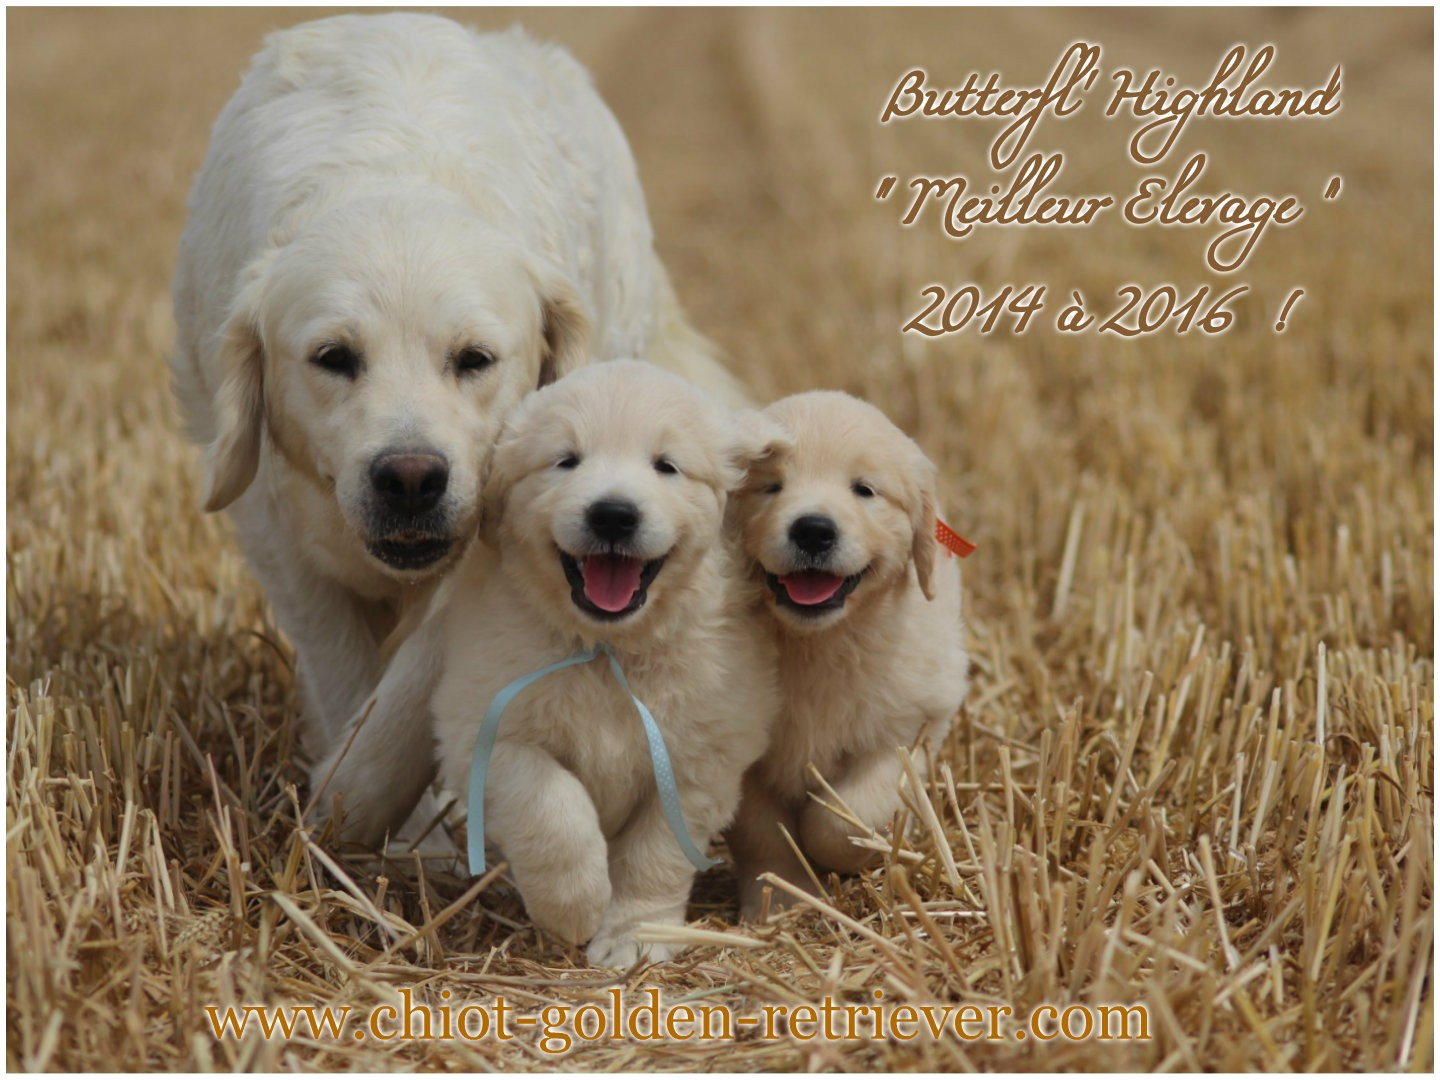 Elevage de Chiots Golden retrievers - Chiots Golden retrievers